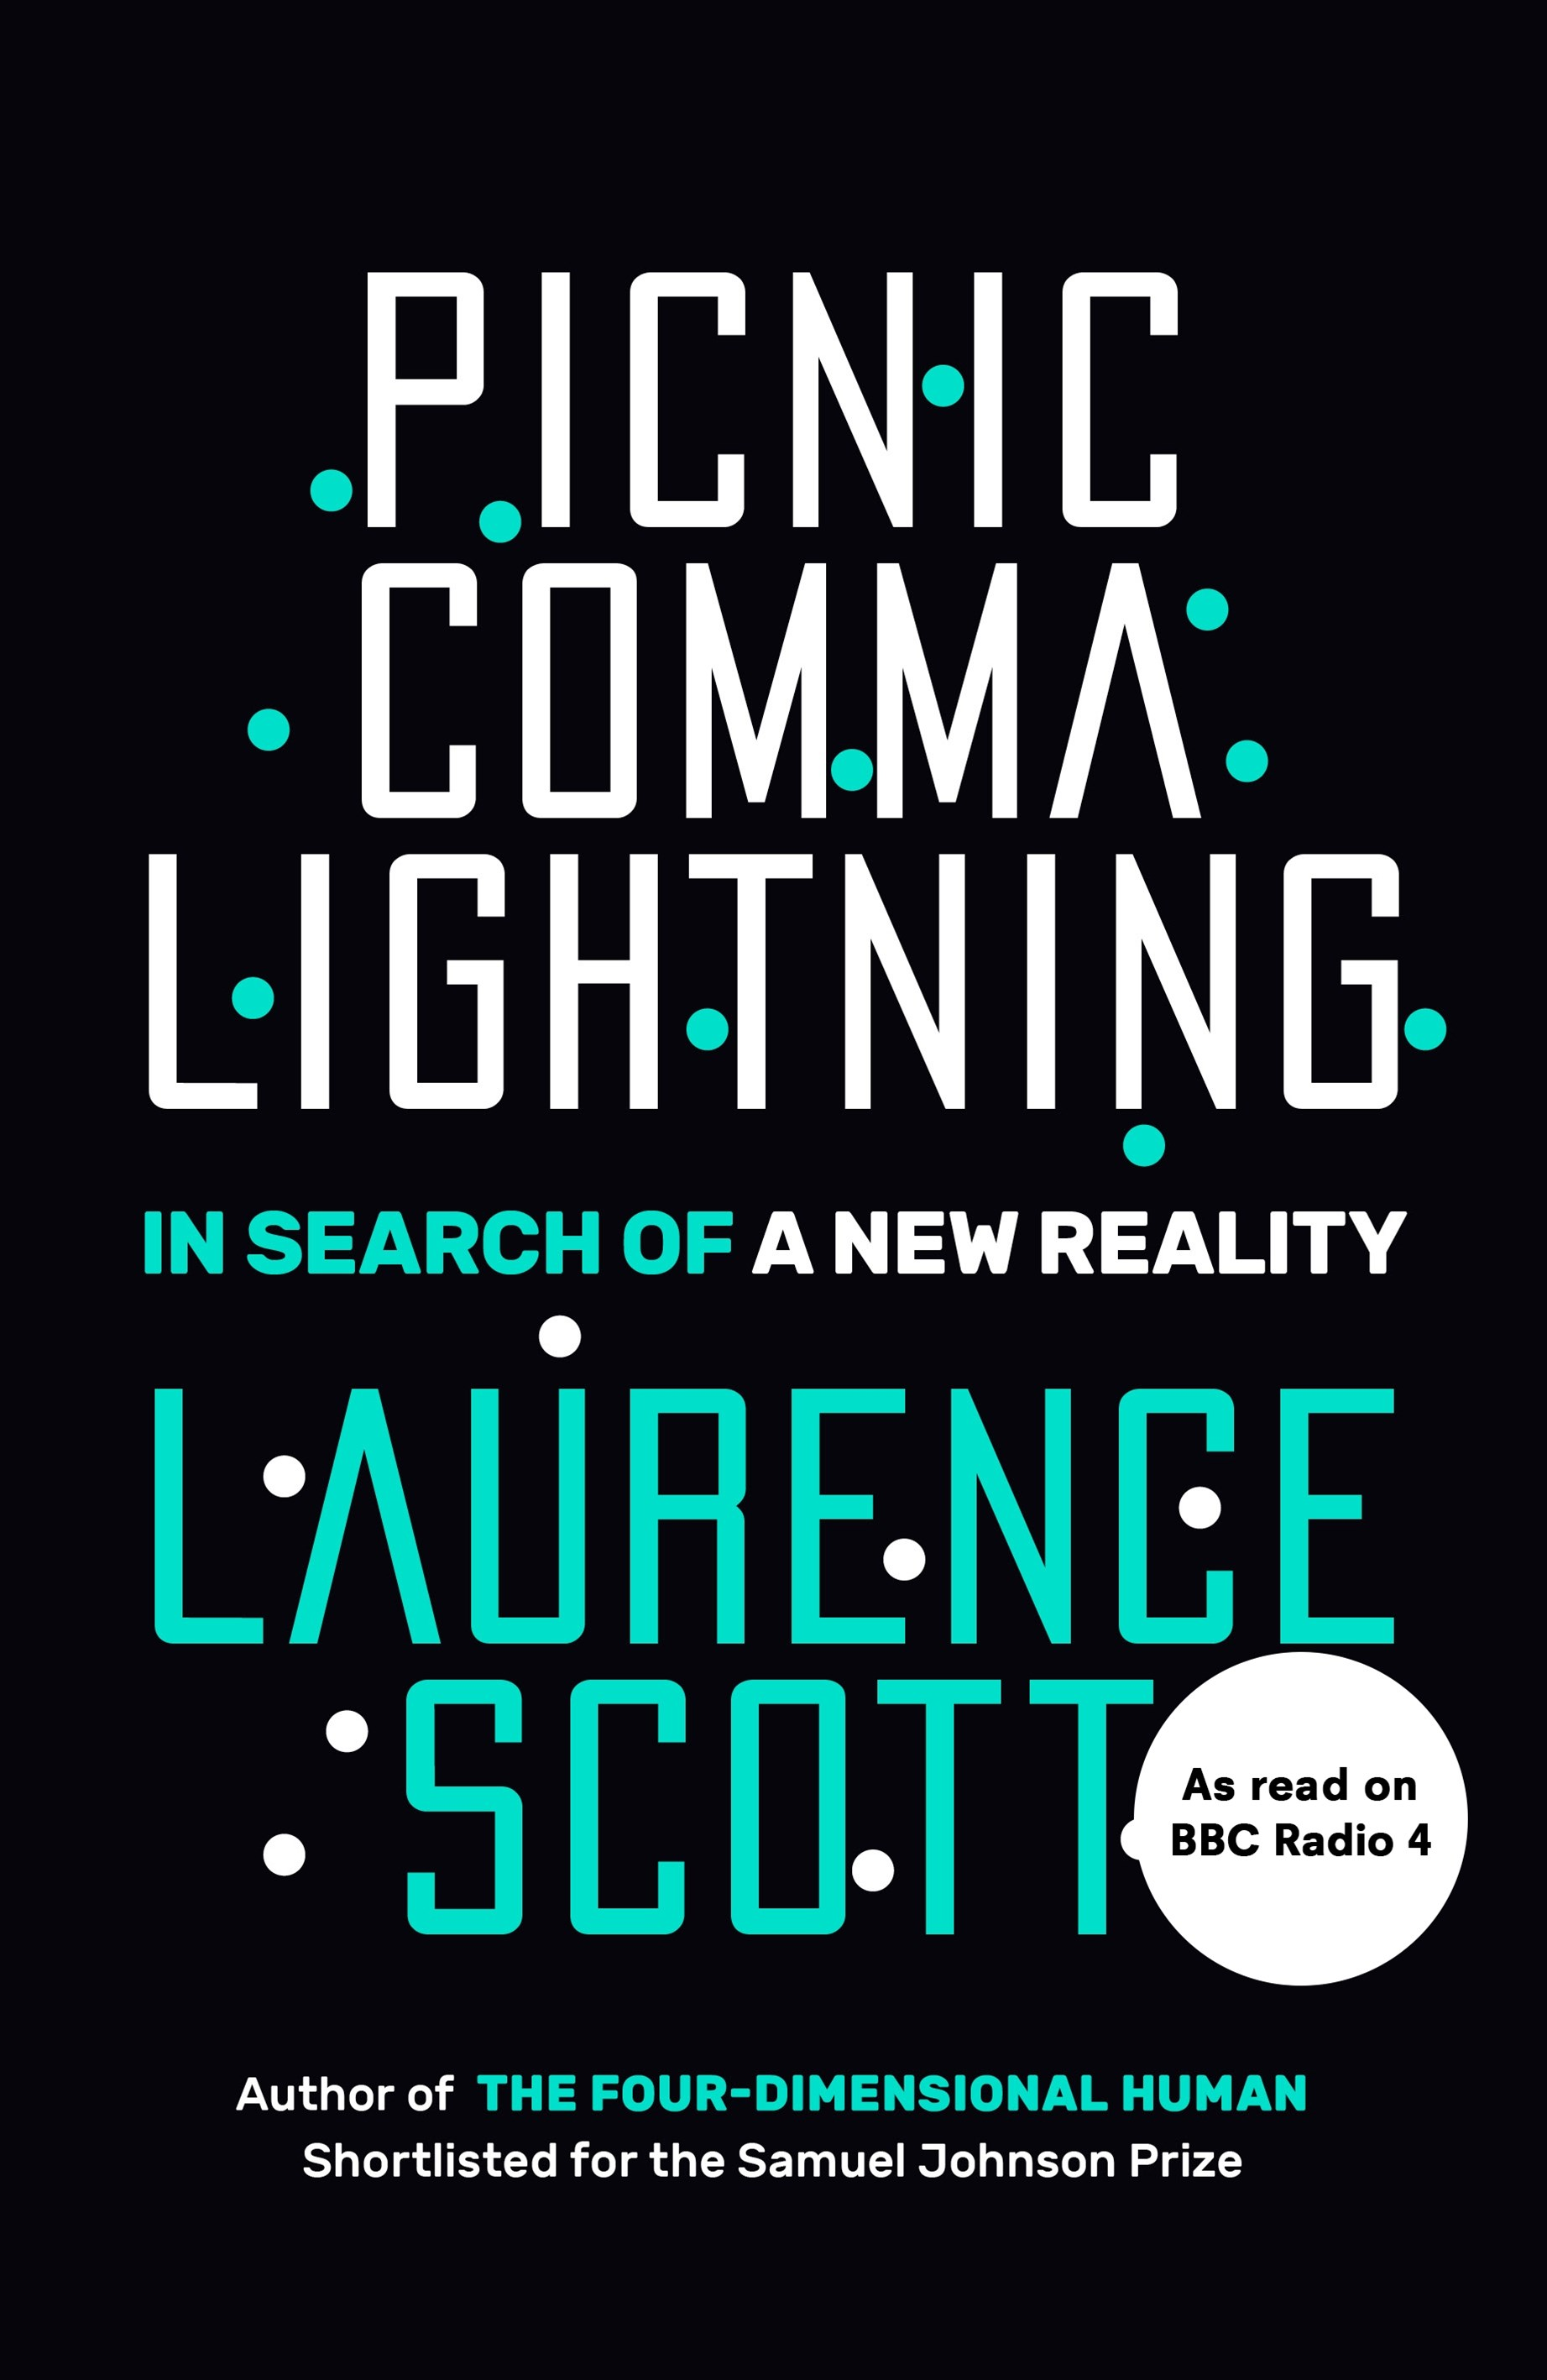 Picnic Comma Lightning: In Search of the New Reality